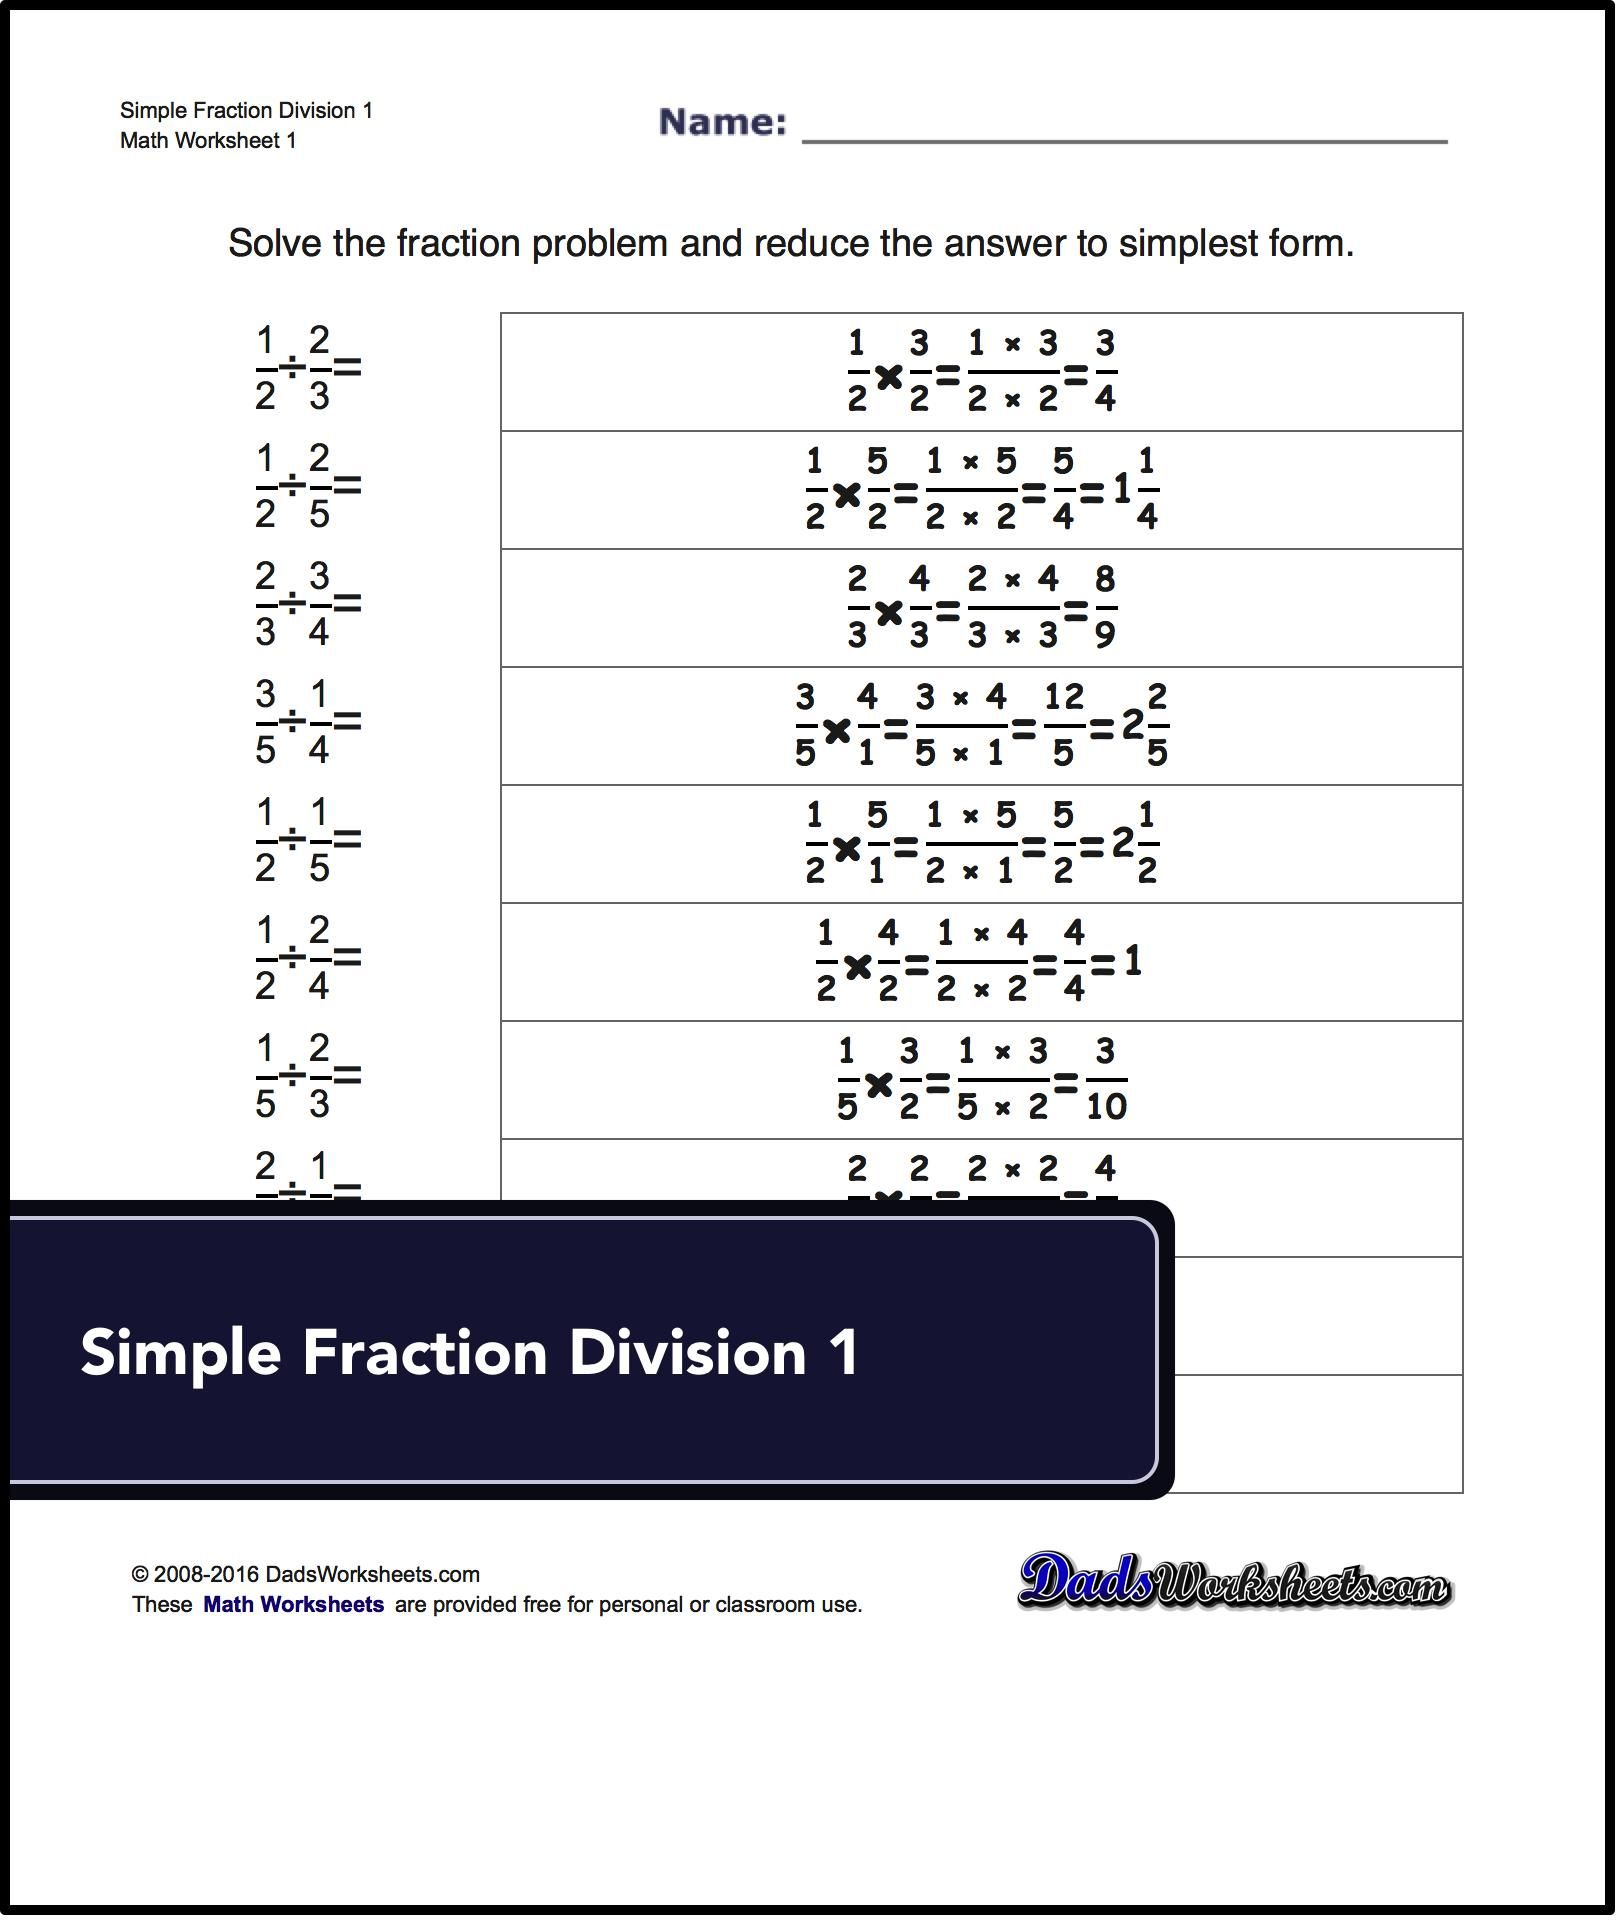 Free Math Worksheets For Fraction Division Problems